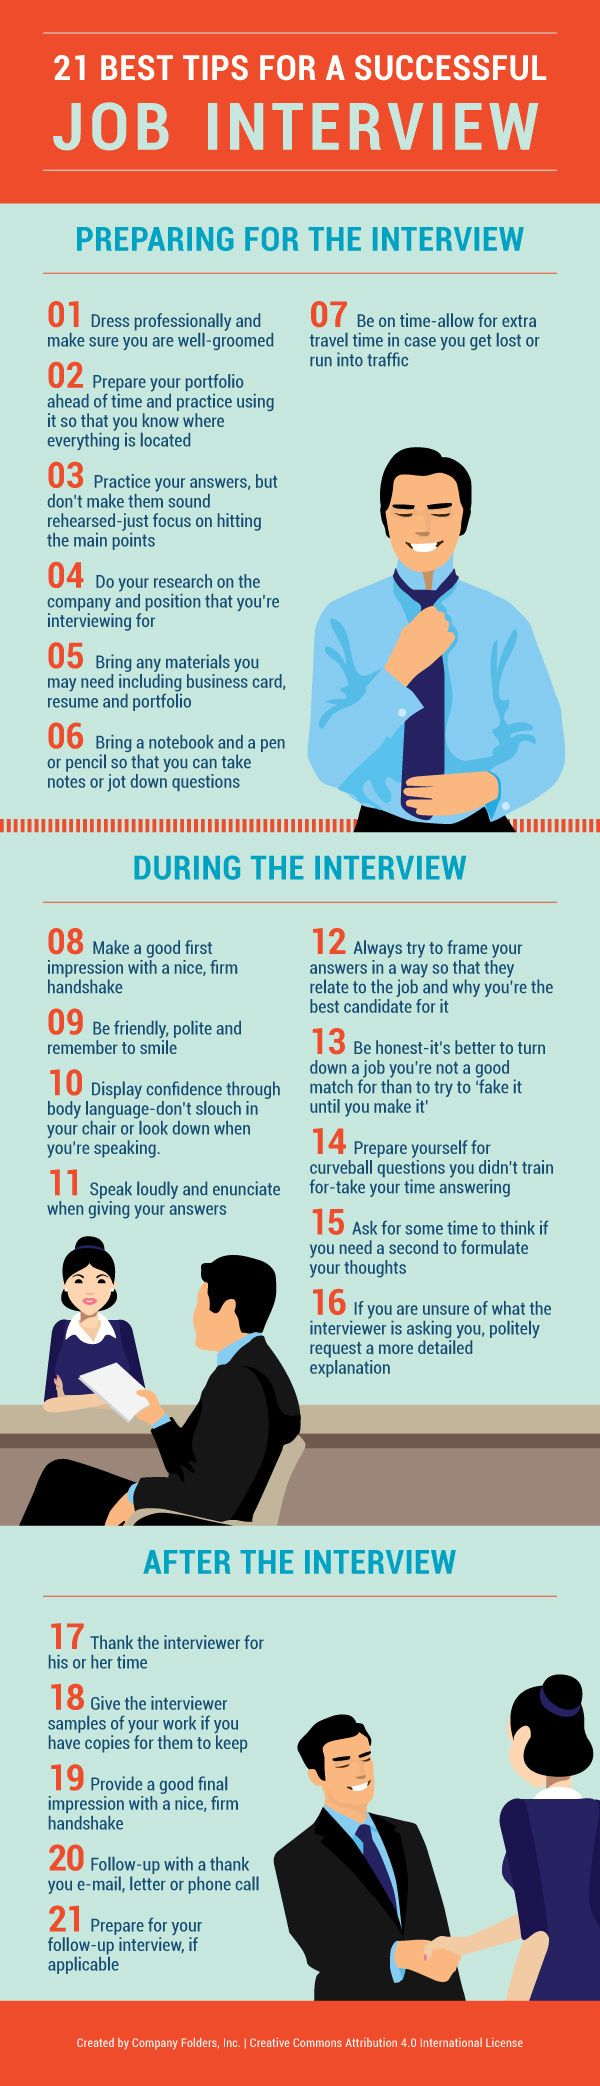 Interviewing Tips 15 Best Interviews Images On Pinterest  Gym Career Advice And Job .